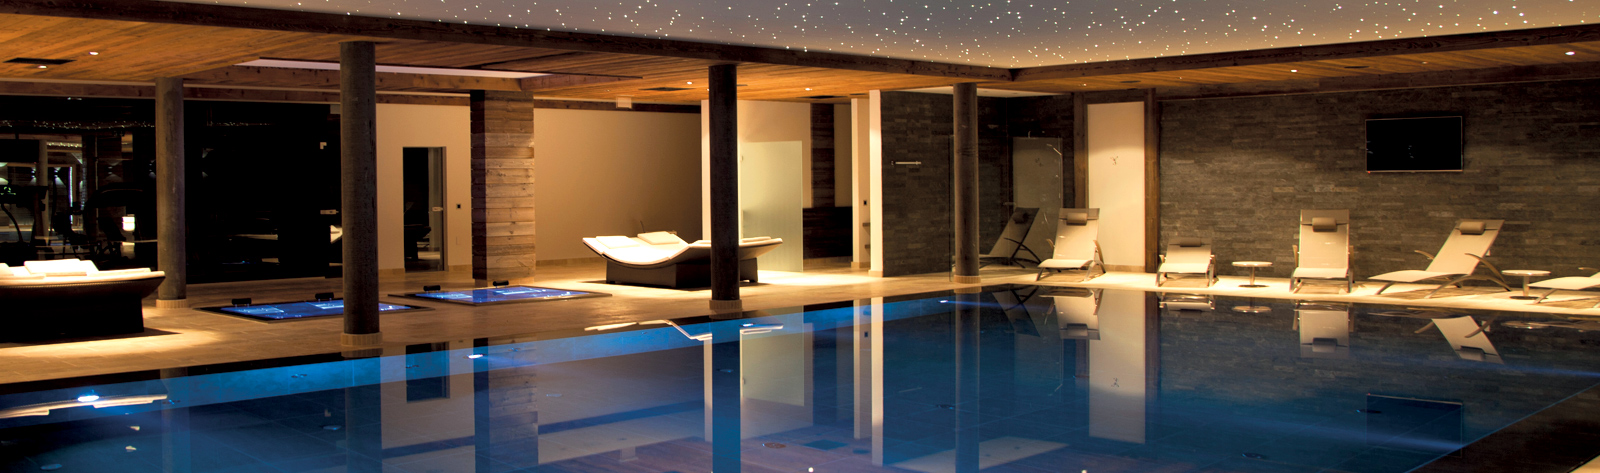 construction d 39 une piscine d bordement sur mesure et installation spa jacuzzi de luxe. Black Bedroom Furniture Sets. Home Design Ideas